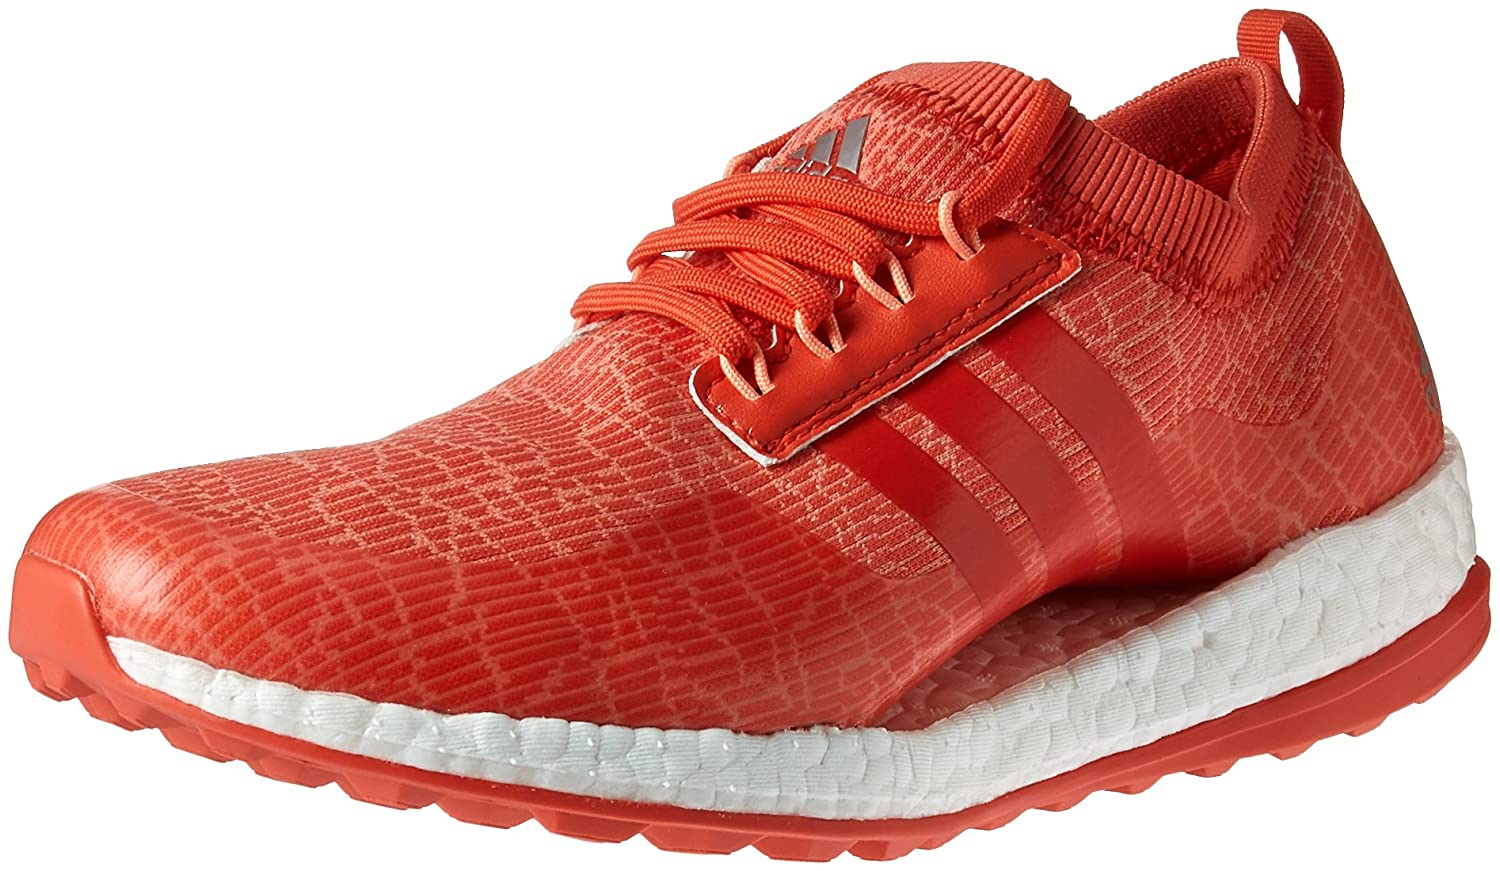 adidas Women's W Pure Boost Xg Golf Shoe B0714LKGVZ 11 B(M) US Chalkcoral S18 / Real Coral S18 / Real Coral S18